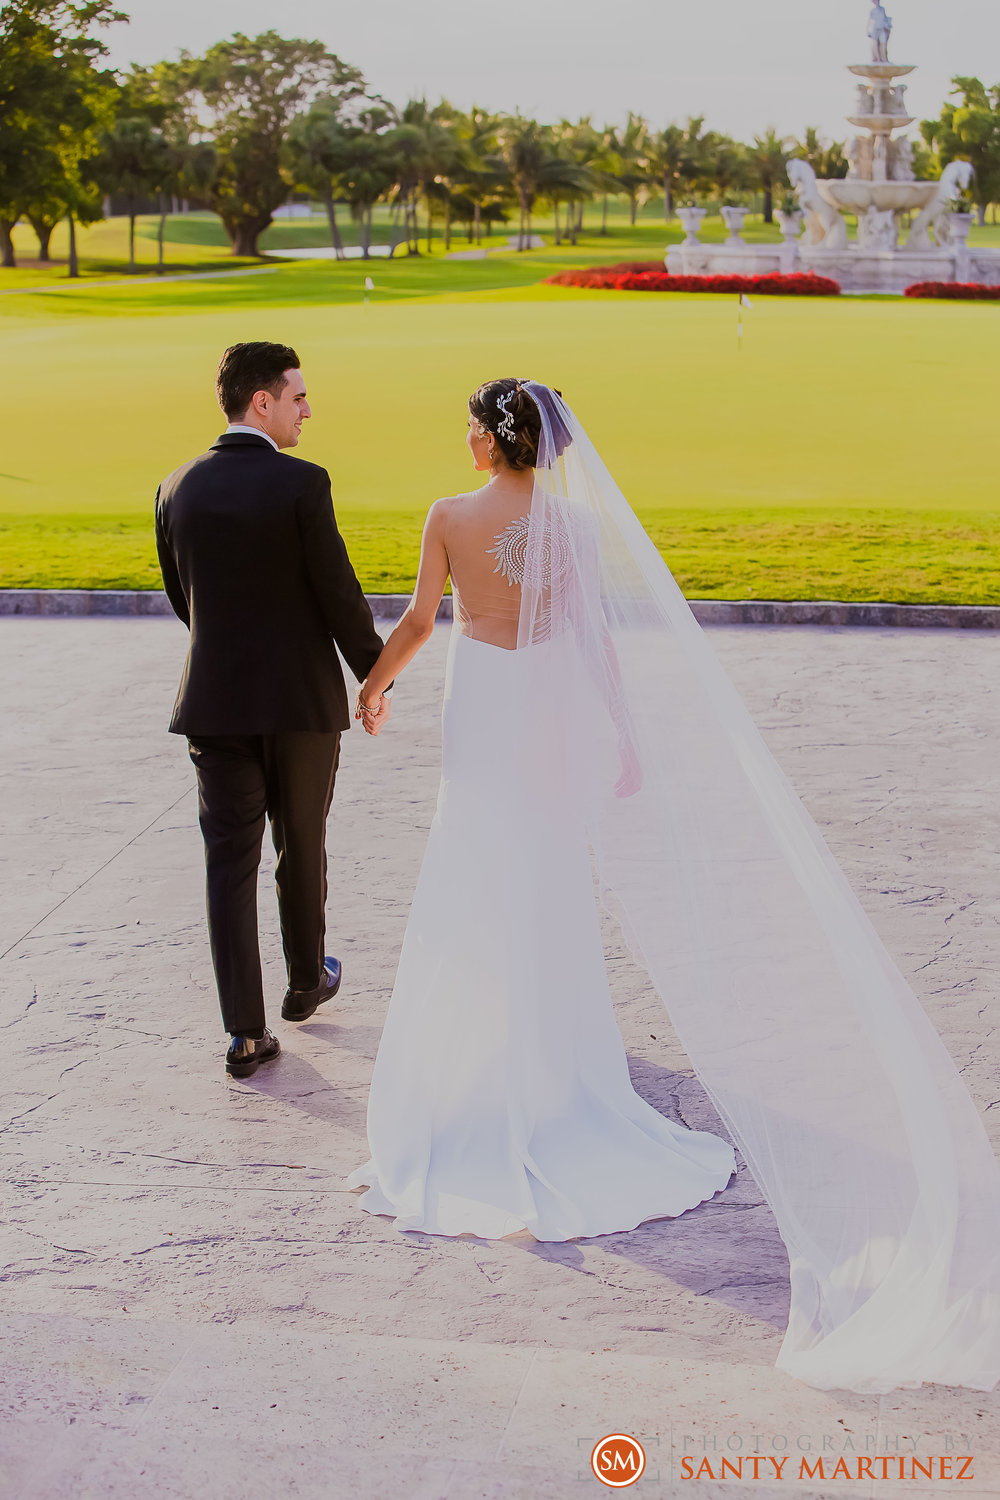 Wedding Trump National Doral Miami - Santy Martinez Photography-5.jpg